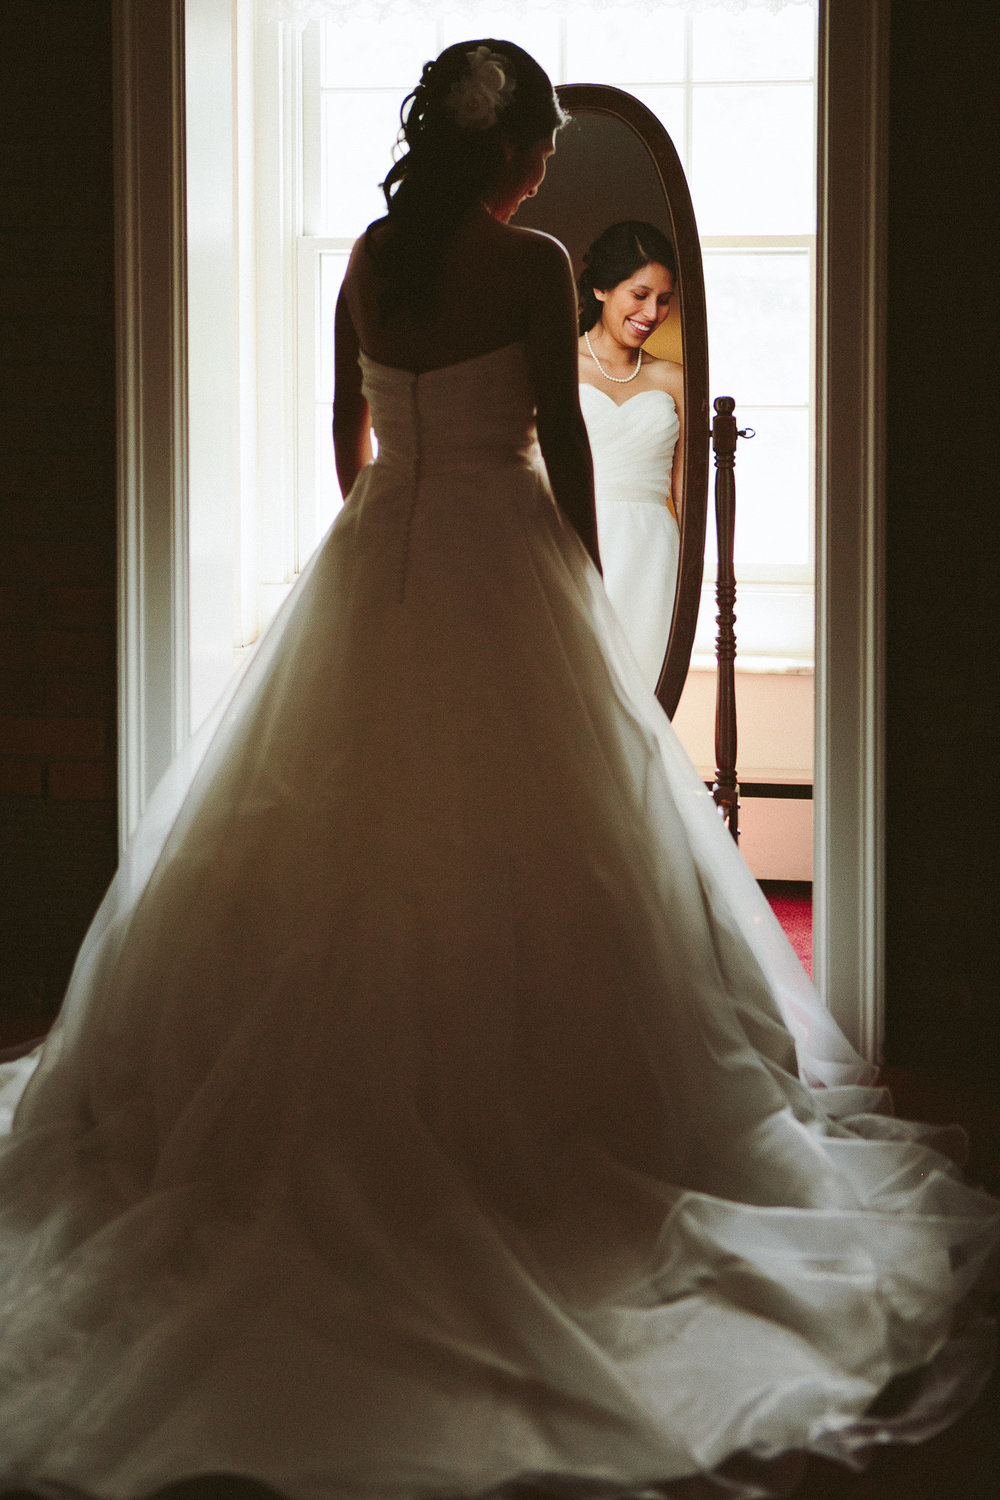 Robb McCormick Photography - Wedding Photographer (111 of 128).jpg